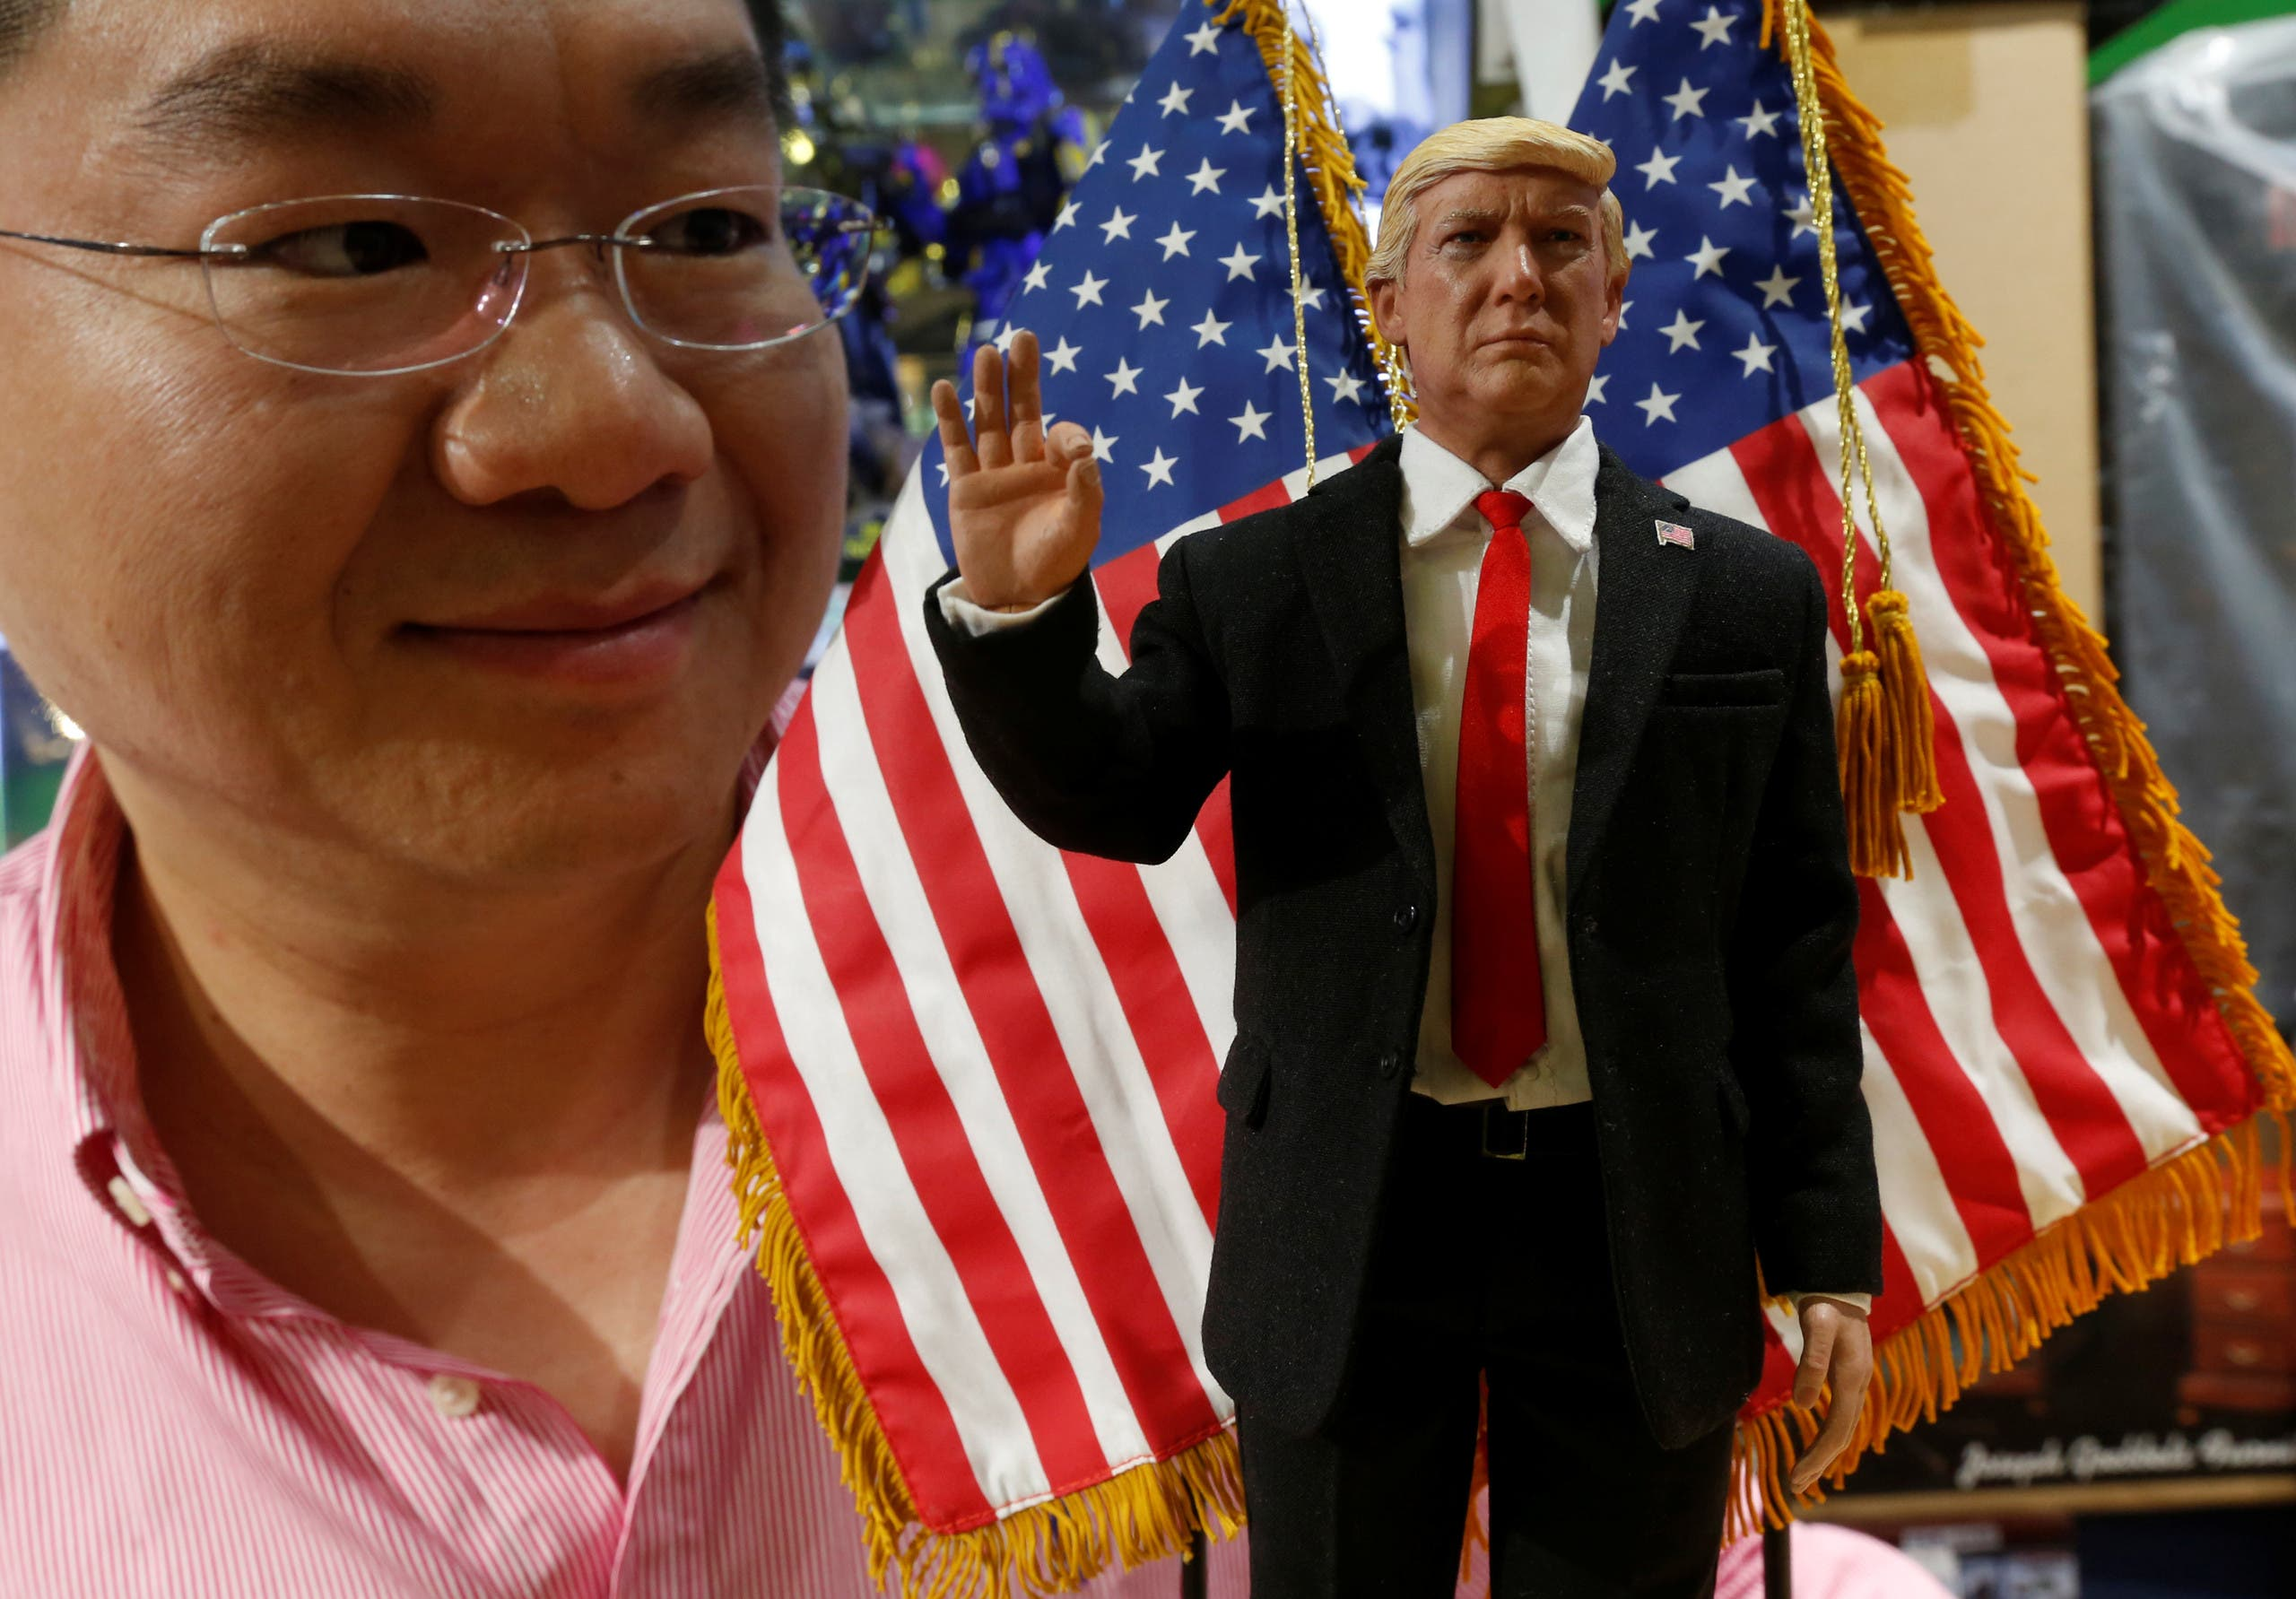 DID Corporation CEO Howard Cheung poses with a prototype 12-inch action figure of U.S. President Donald Trump, which will be available in March, in Hong Kong, China January 21, 2017. REUTERS/Bobby Yip TPX IMAGES OF THE DAY